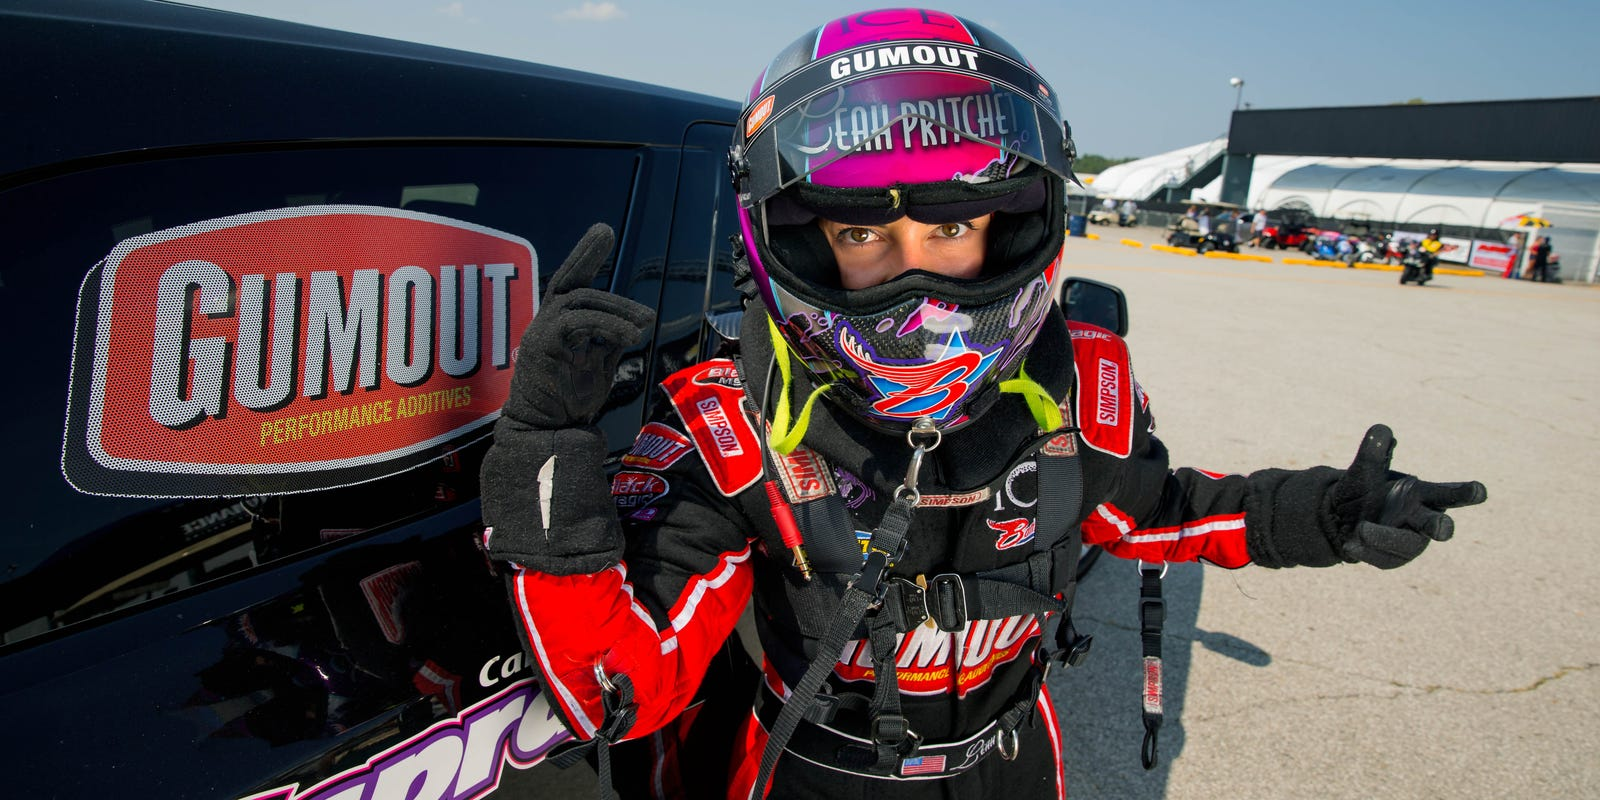 Leah Pritchett embraces life as role model, Top Fuel driver